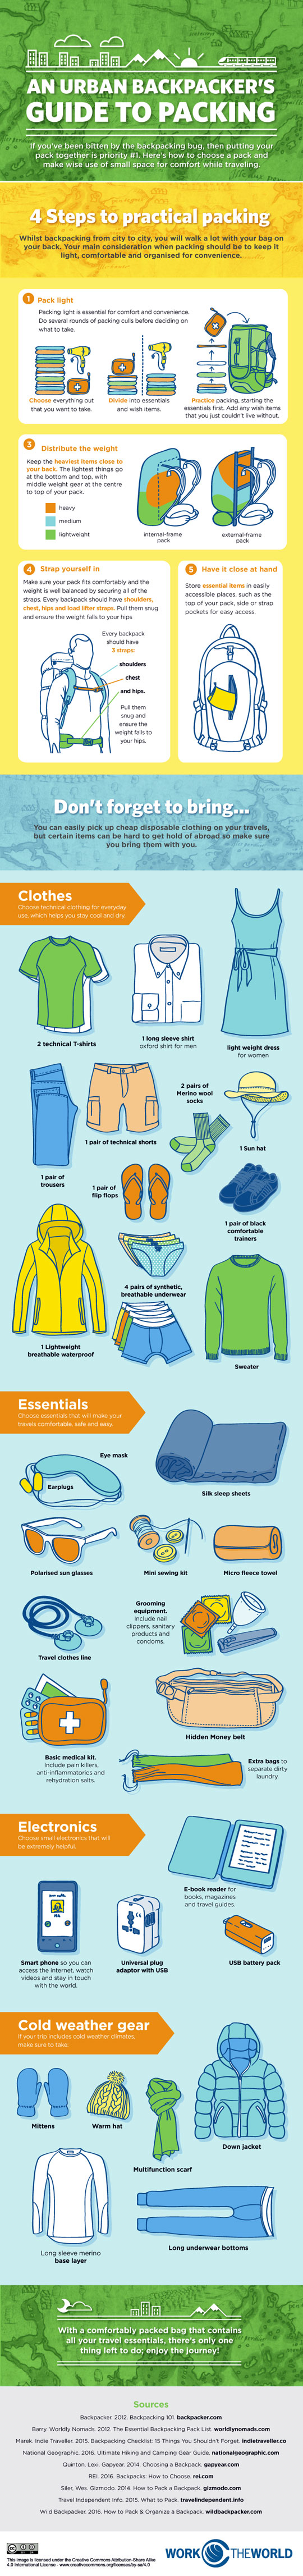 Backpackers-Guide-to-Packing